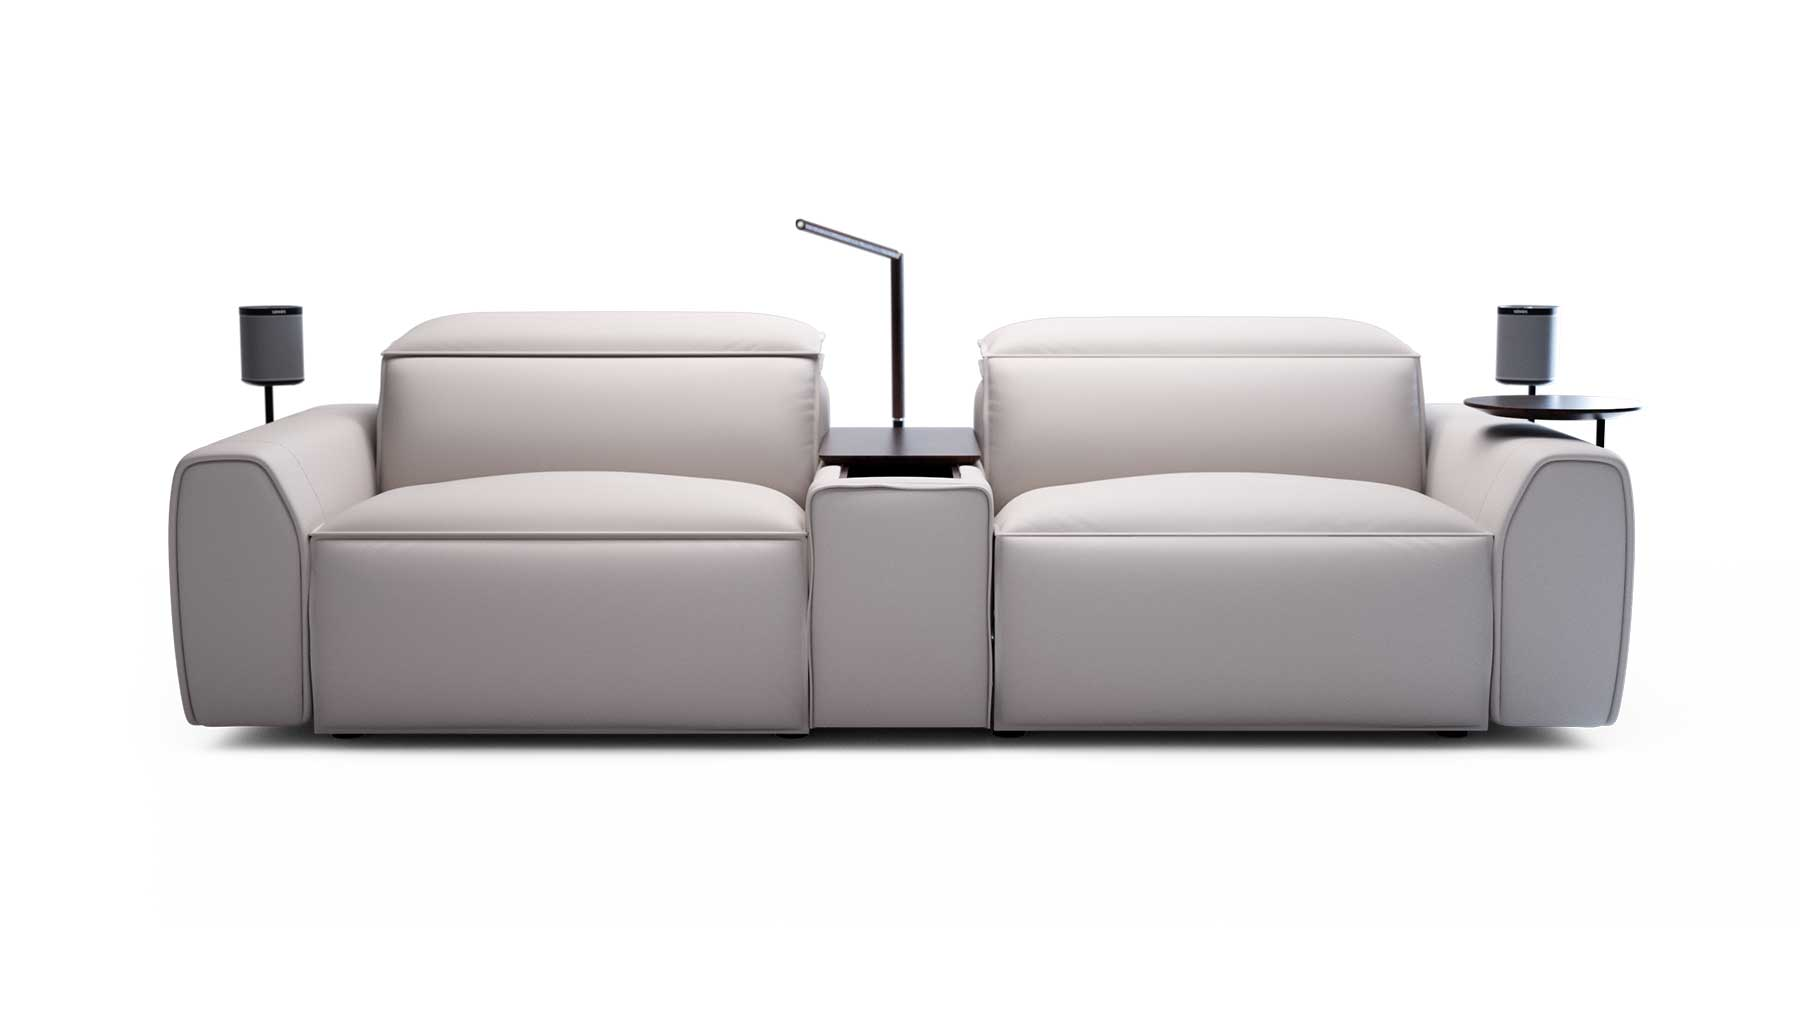 Recliner Sofas In Zimbabwe Nimbus Reclining Sofa Luxurious Recliner Modular Sofa Lounge